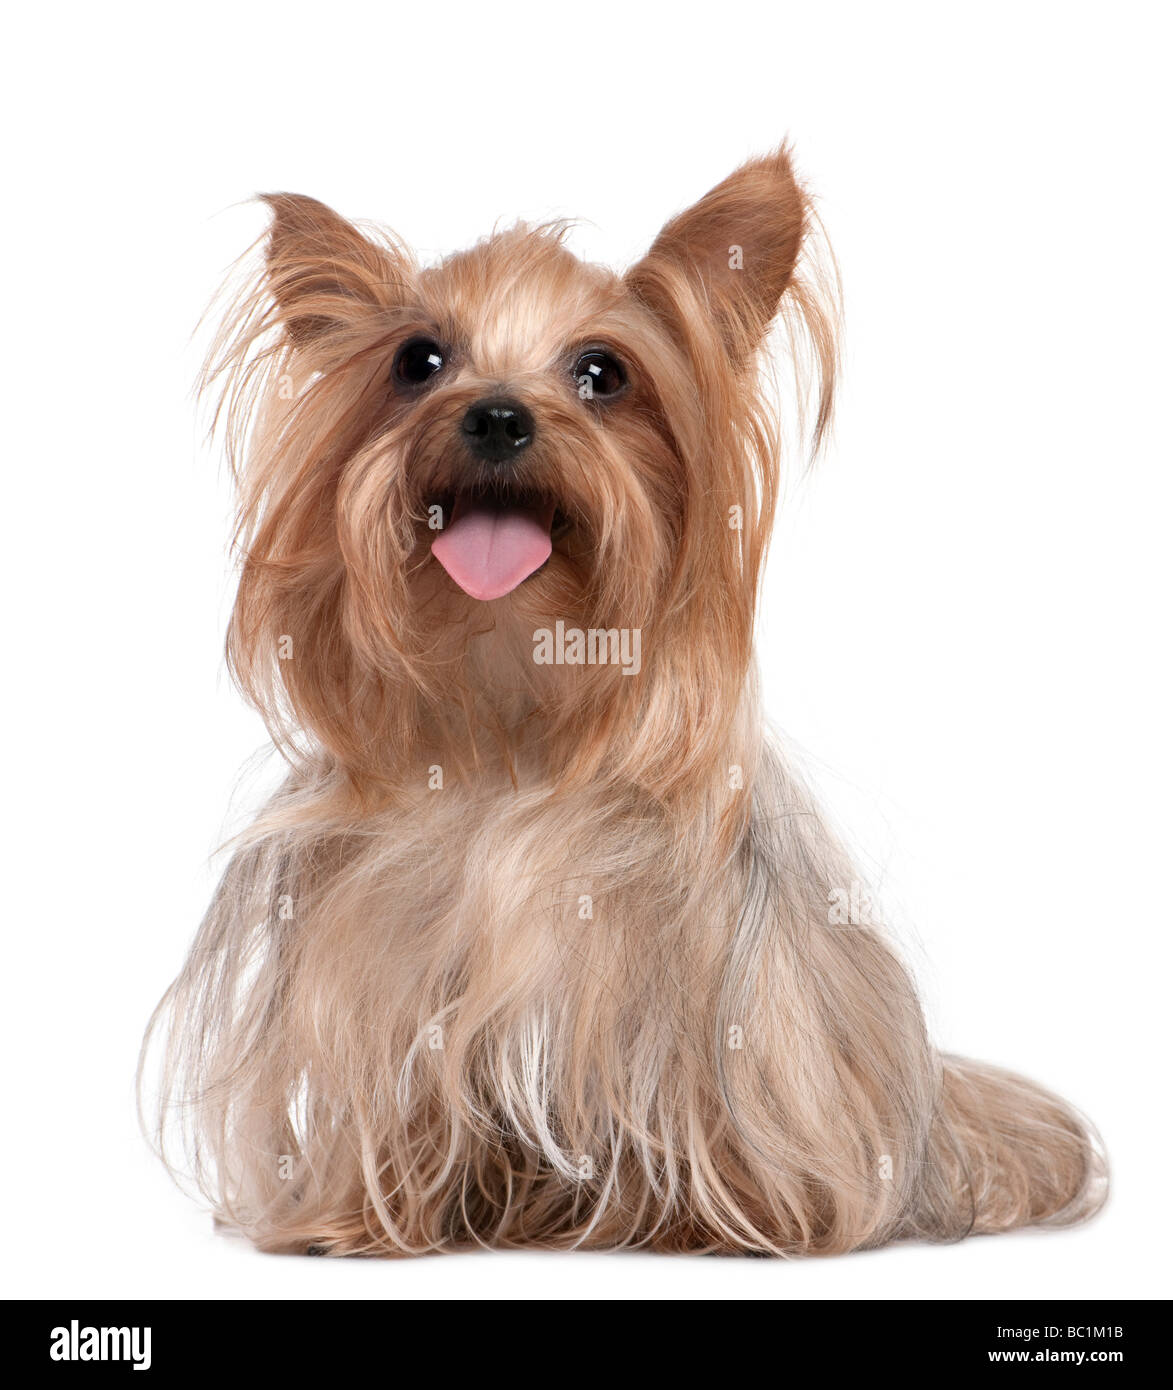 Yorkshire Terrier panting 3 years old in front of a white background - Stock Image